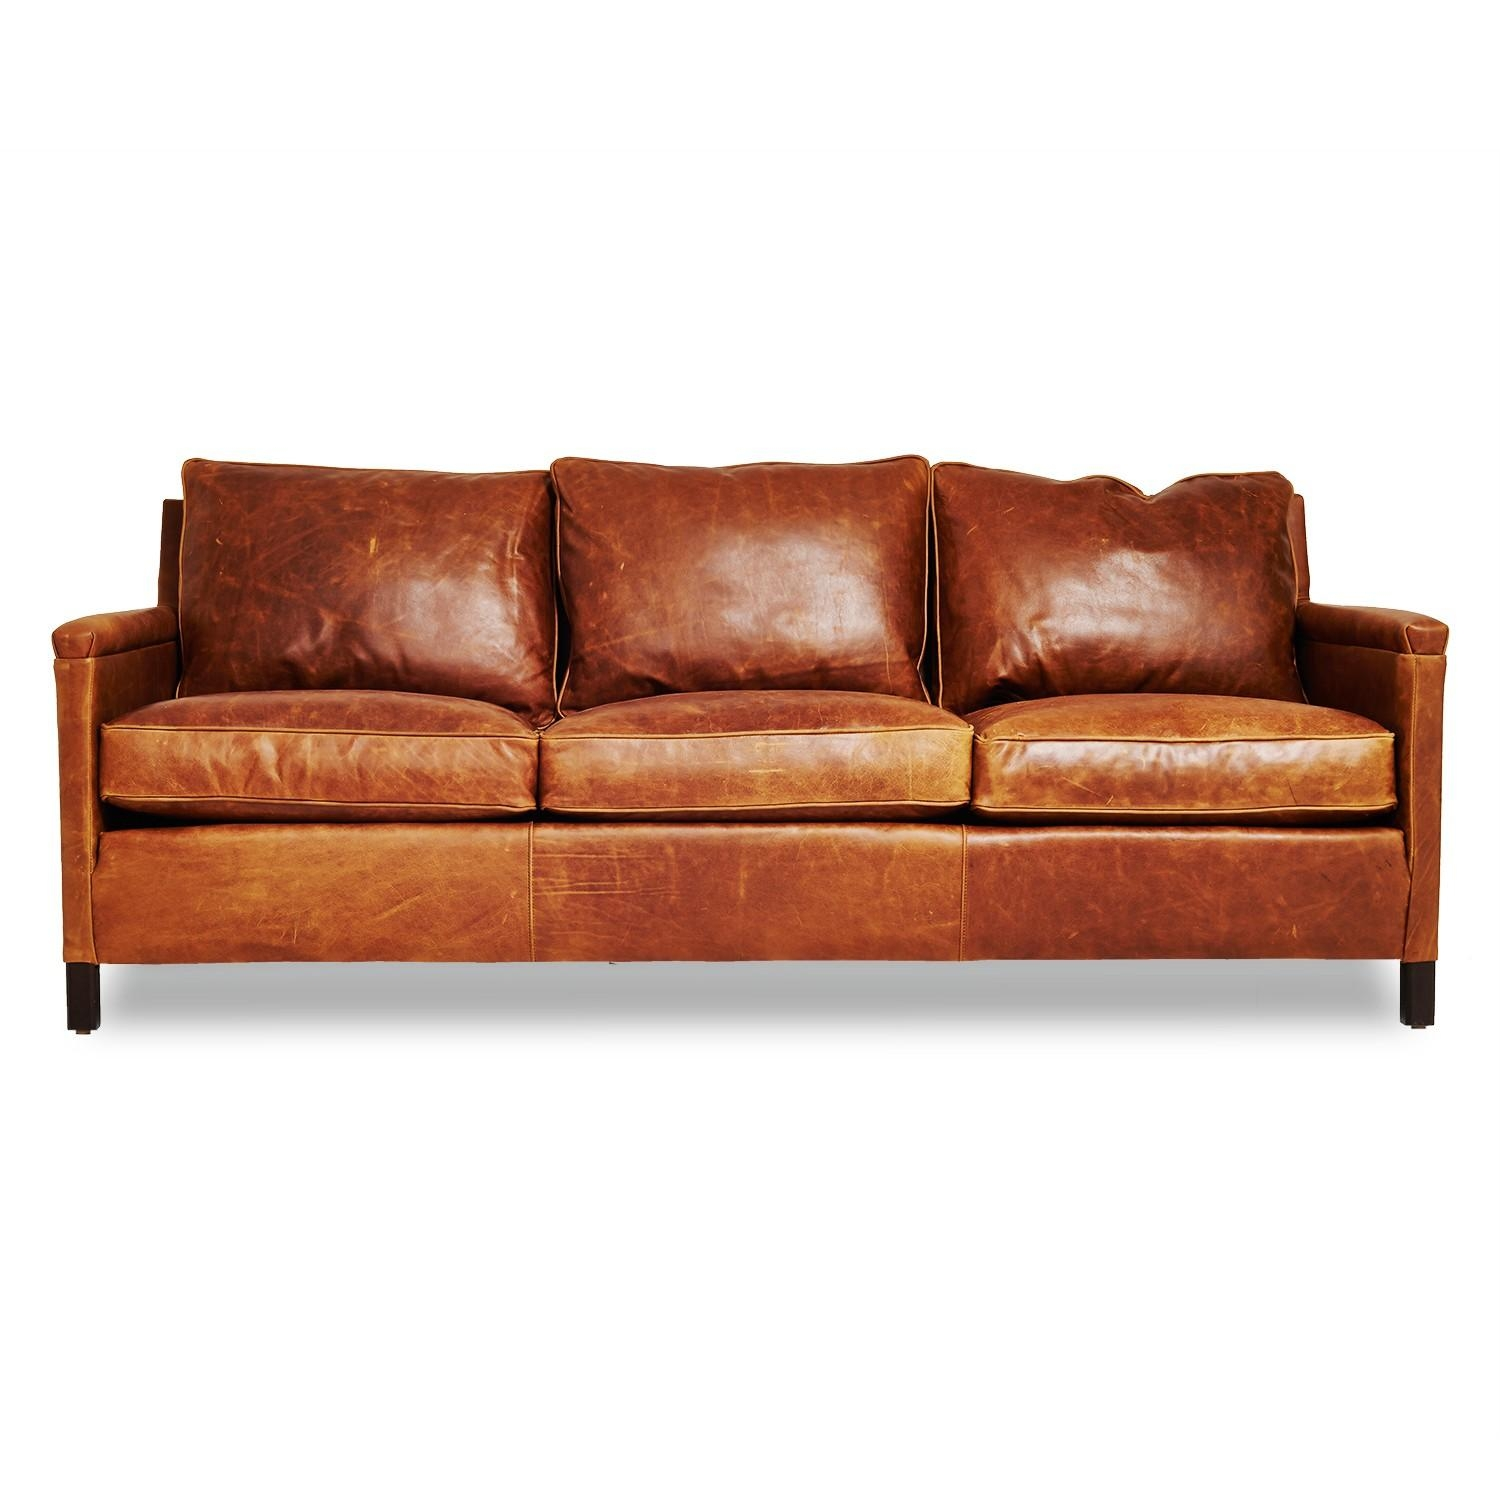 Sofas Center : Caramel Colored Leather Sofascaramel Sofa Set Camel With Camel Colored Leather Sofas (View 9 of 20)